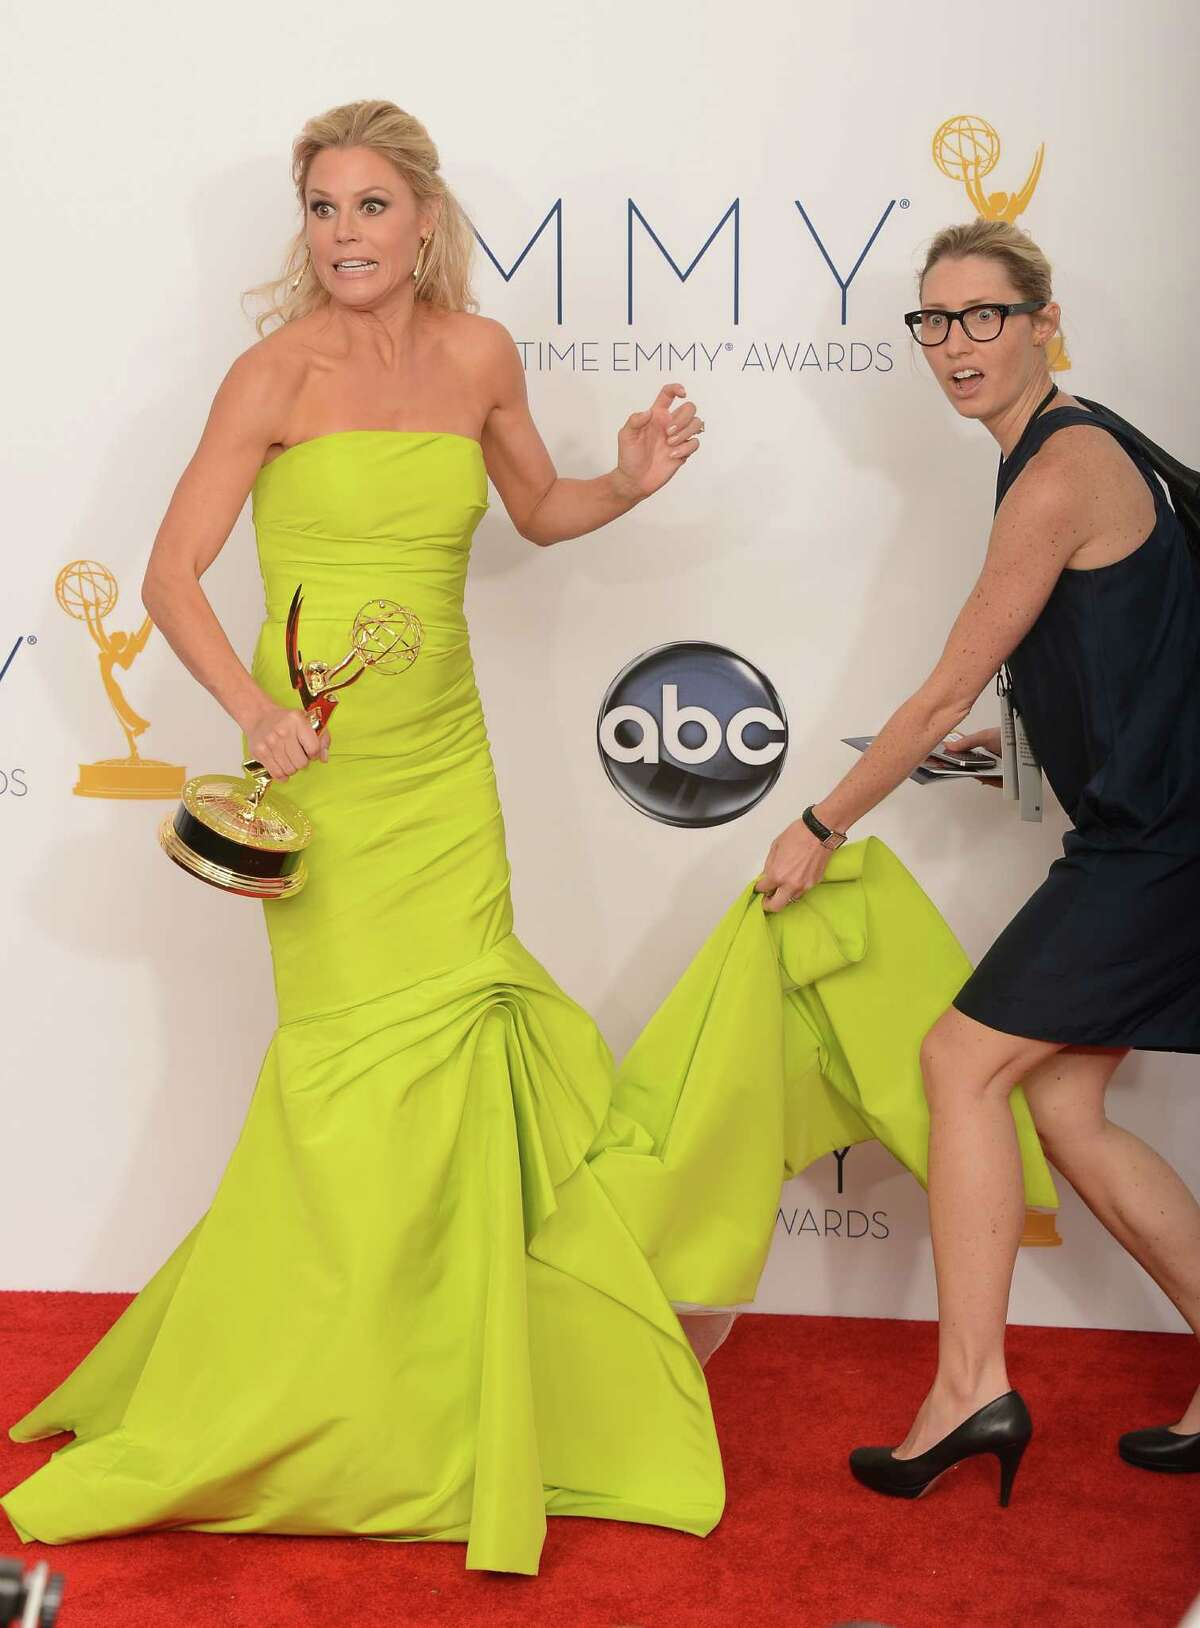 Julie Bowen arrives in the press room at the 64th annual Prime Time Emmy Awards at the Nokia Theatre at LA Live in Los Angeles on Sept. 23, 2012. AFP PHOTO / JOE KLAMAR